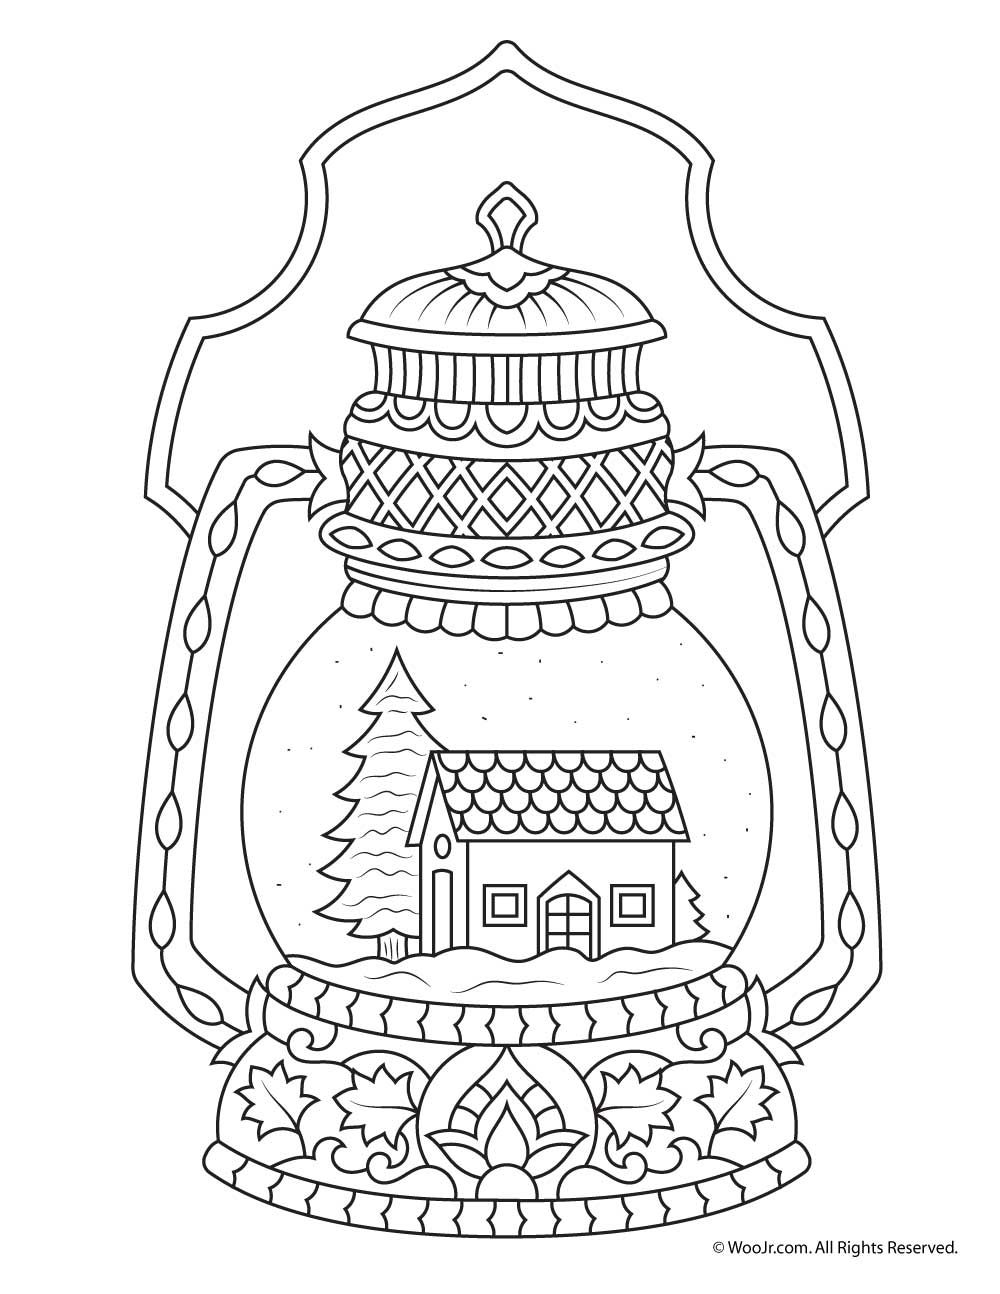 Winter Snow Globe Adult Coloring Page Coloring pages